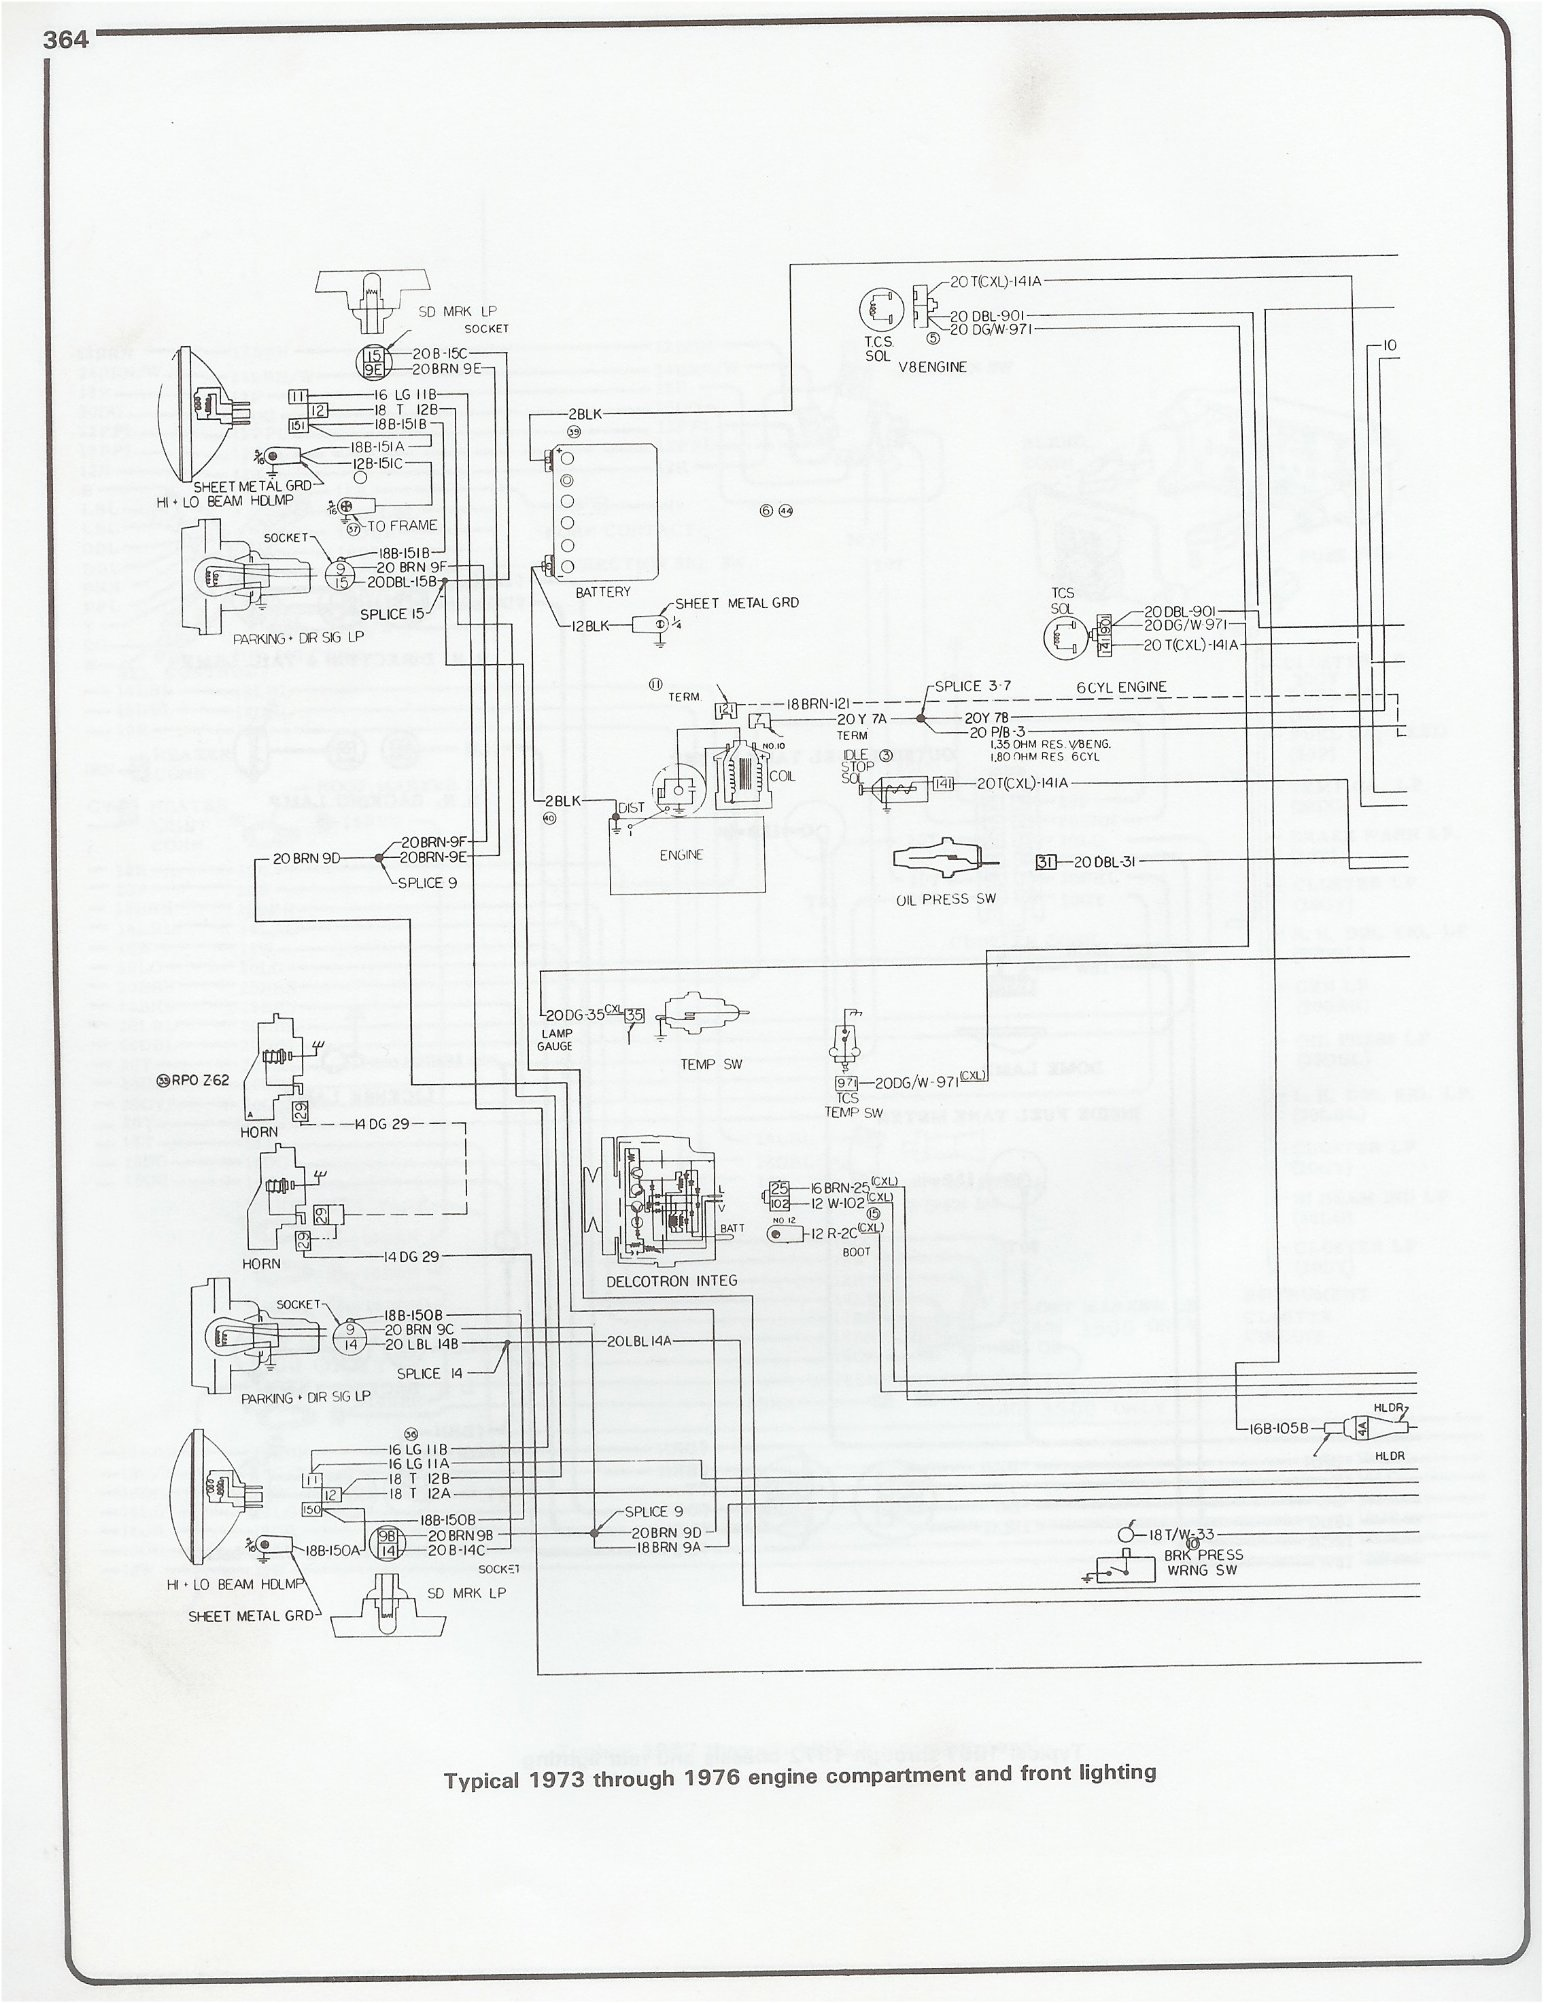 Complete 73 87 Wiring Diagrams F250 7 3l Rss Diagram 76 Engine And Front Lighting